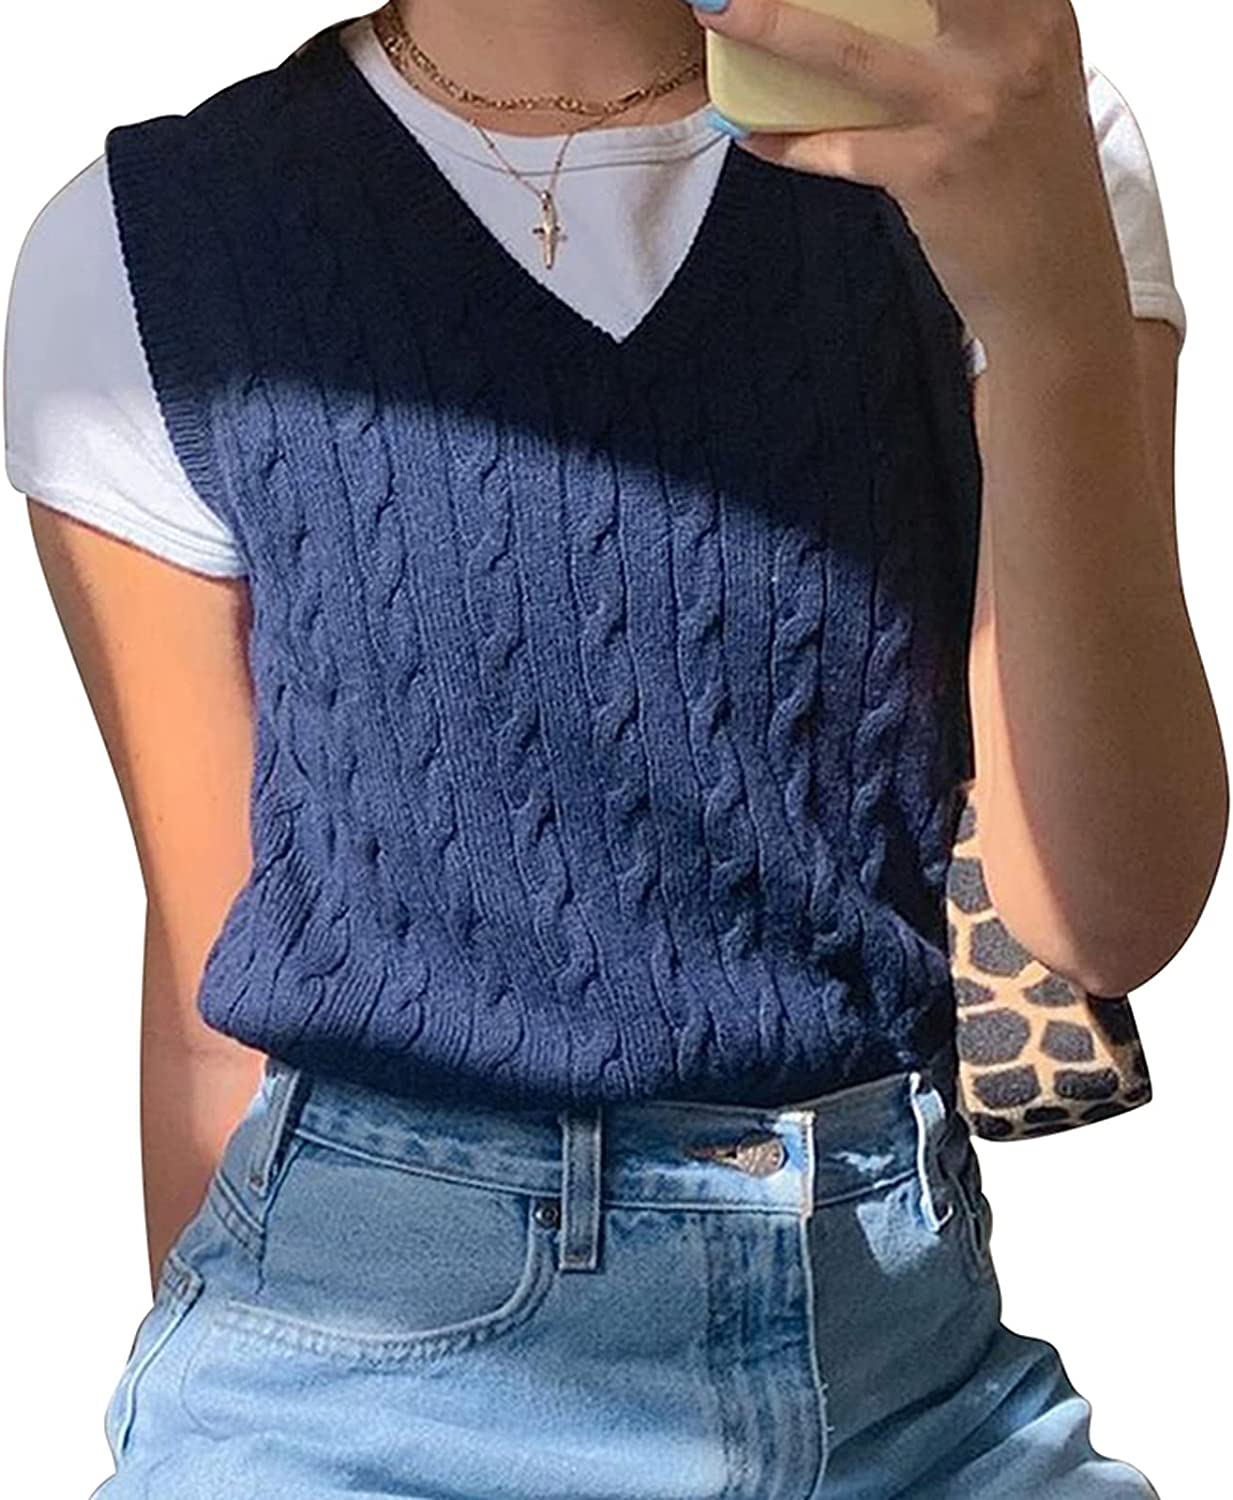 V Neck Vintage Sweater Vest Women Sleeveless Plaid Knitted Crop Sweaters Casual Autumn